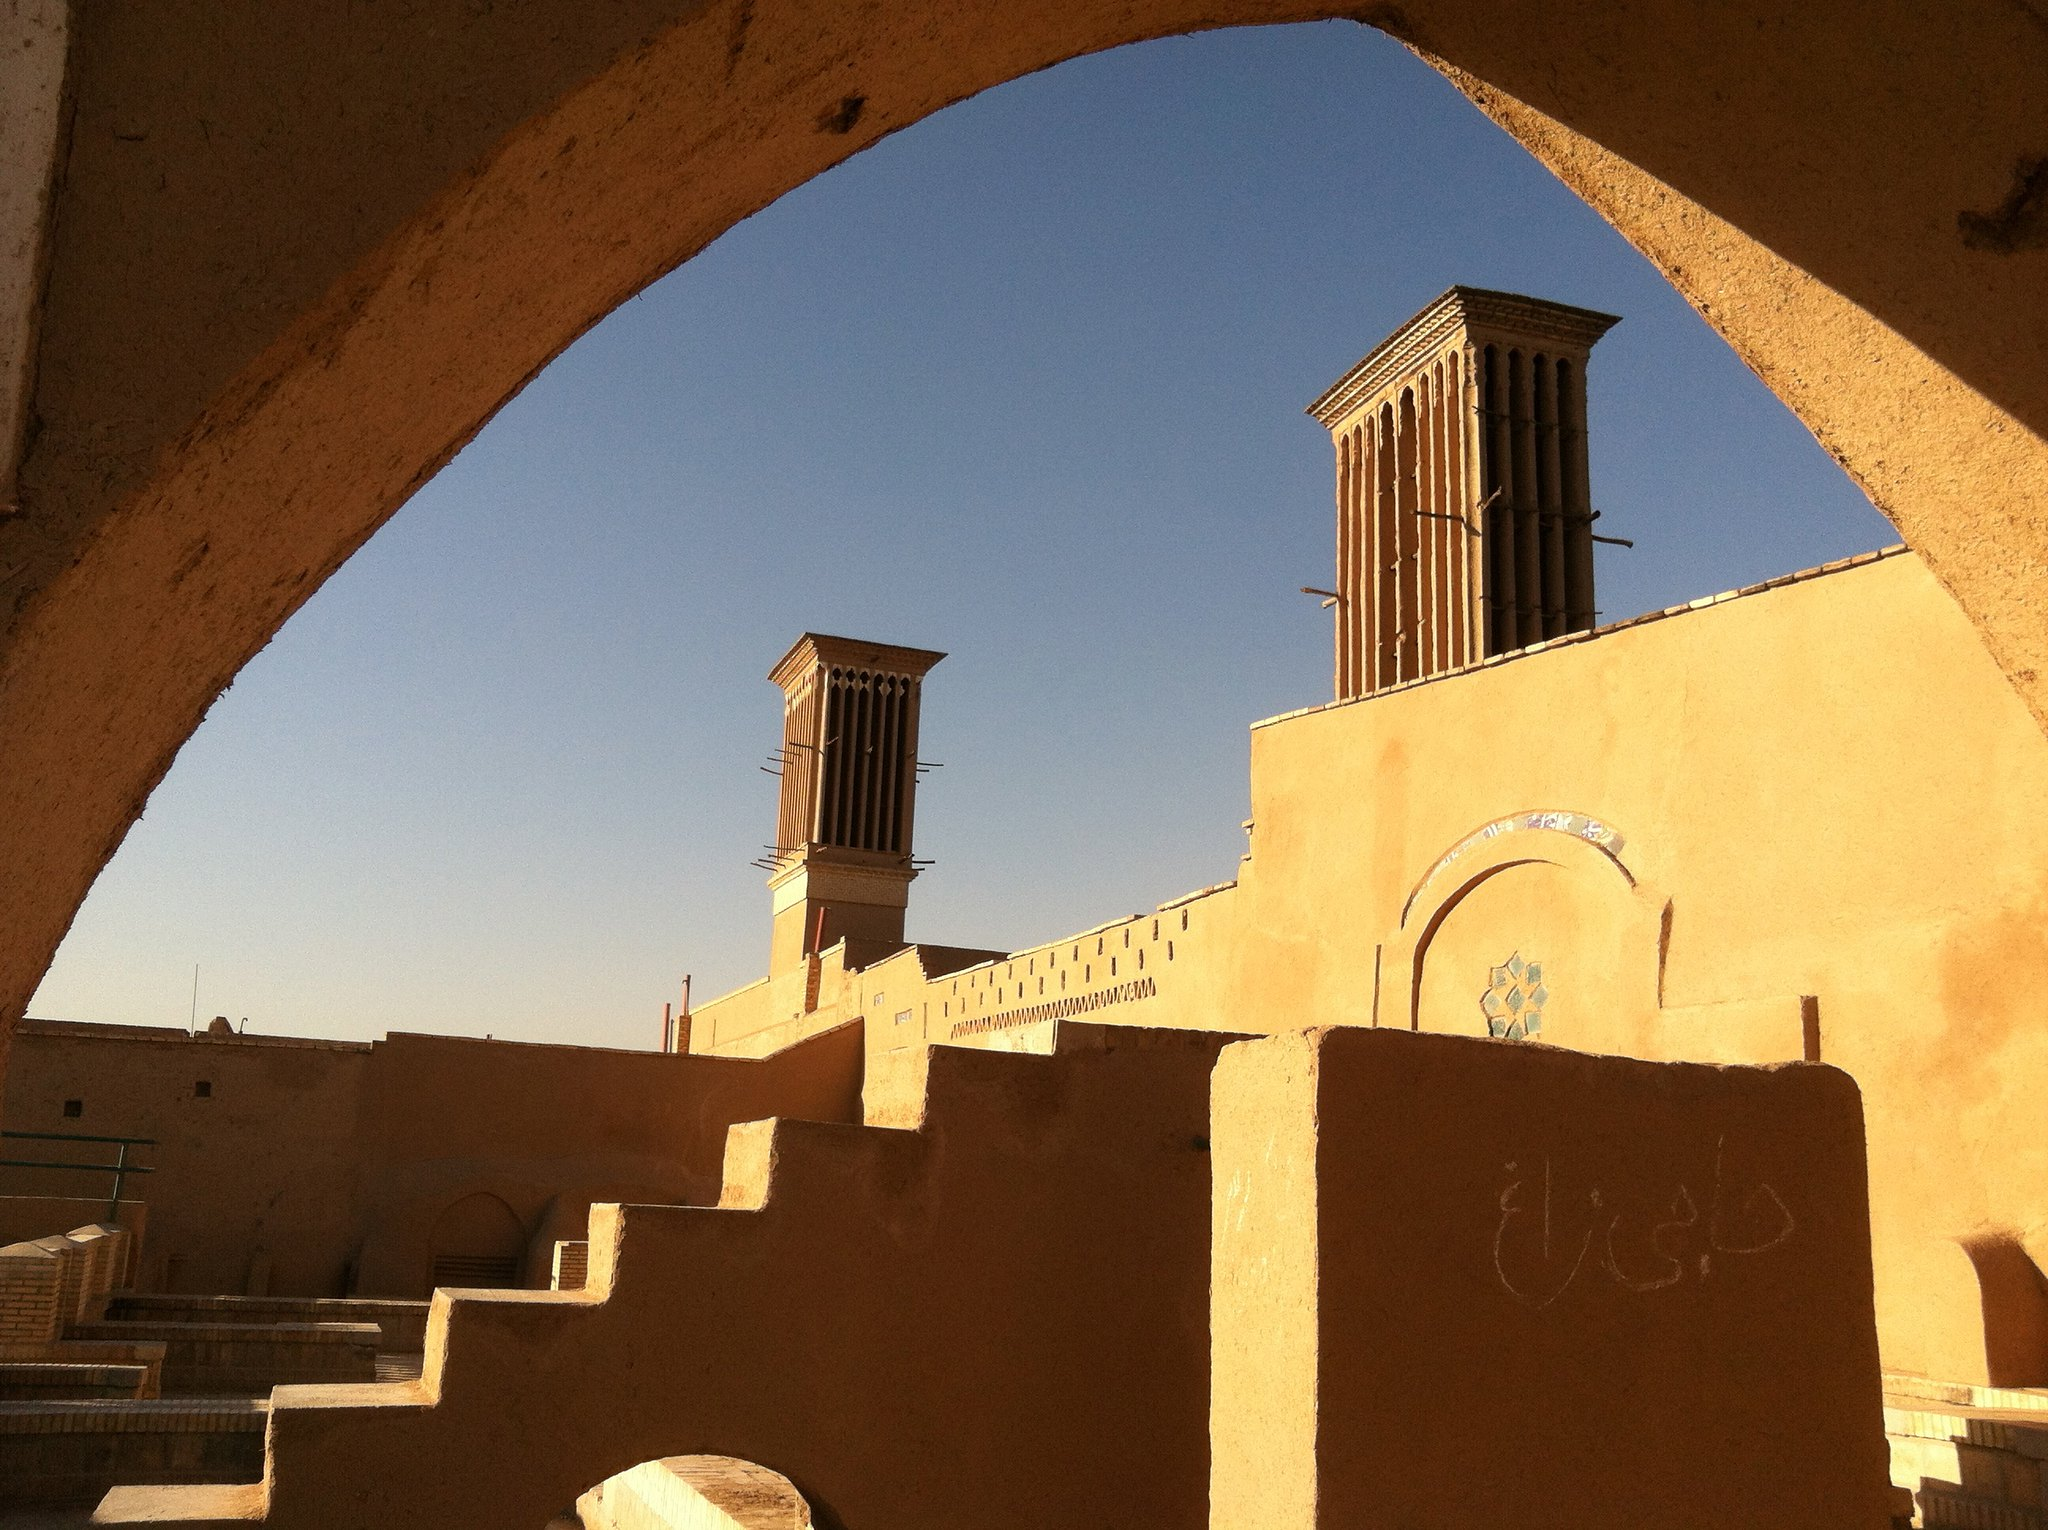 Wind Towers, Yazd, Iran